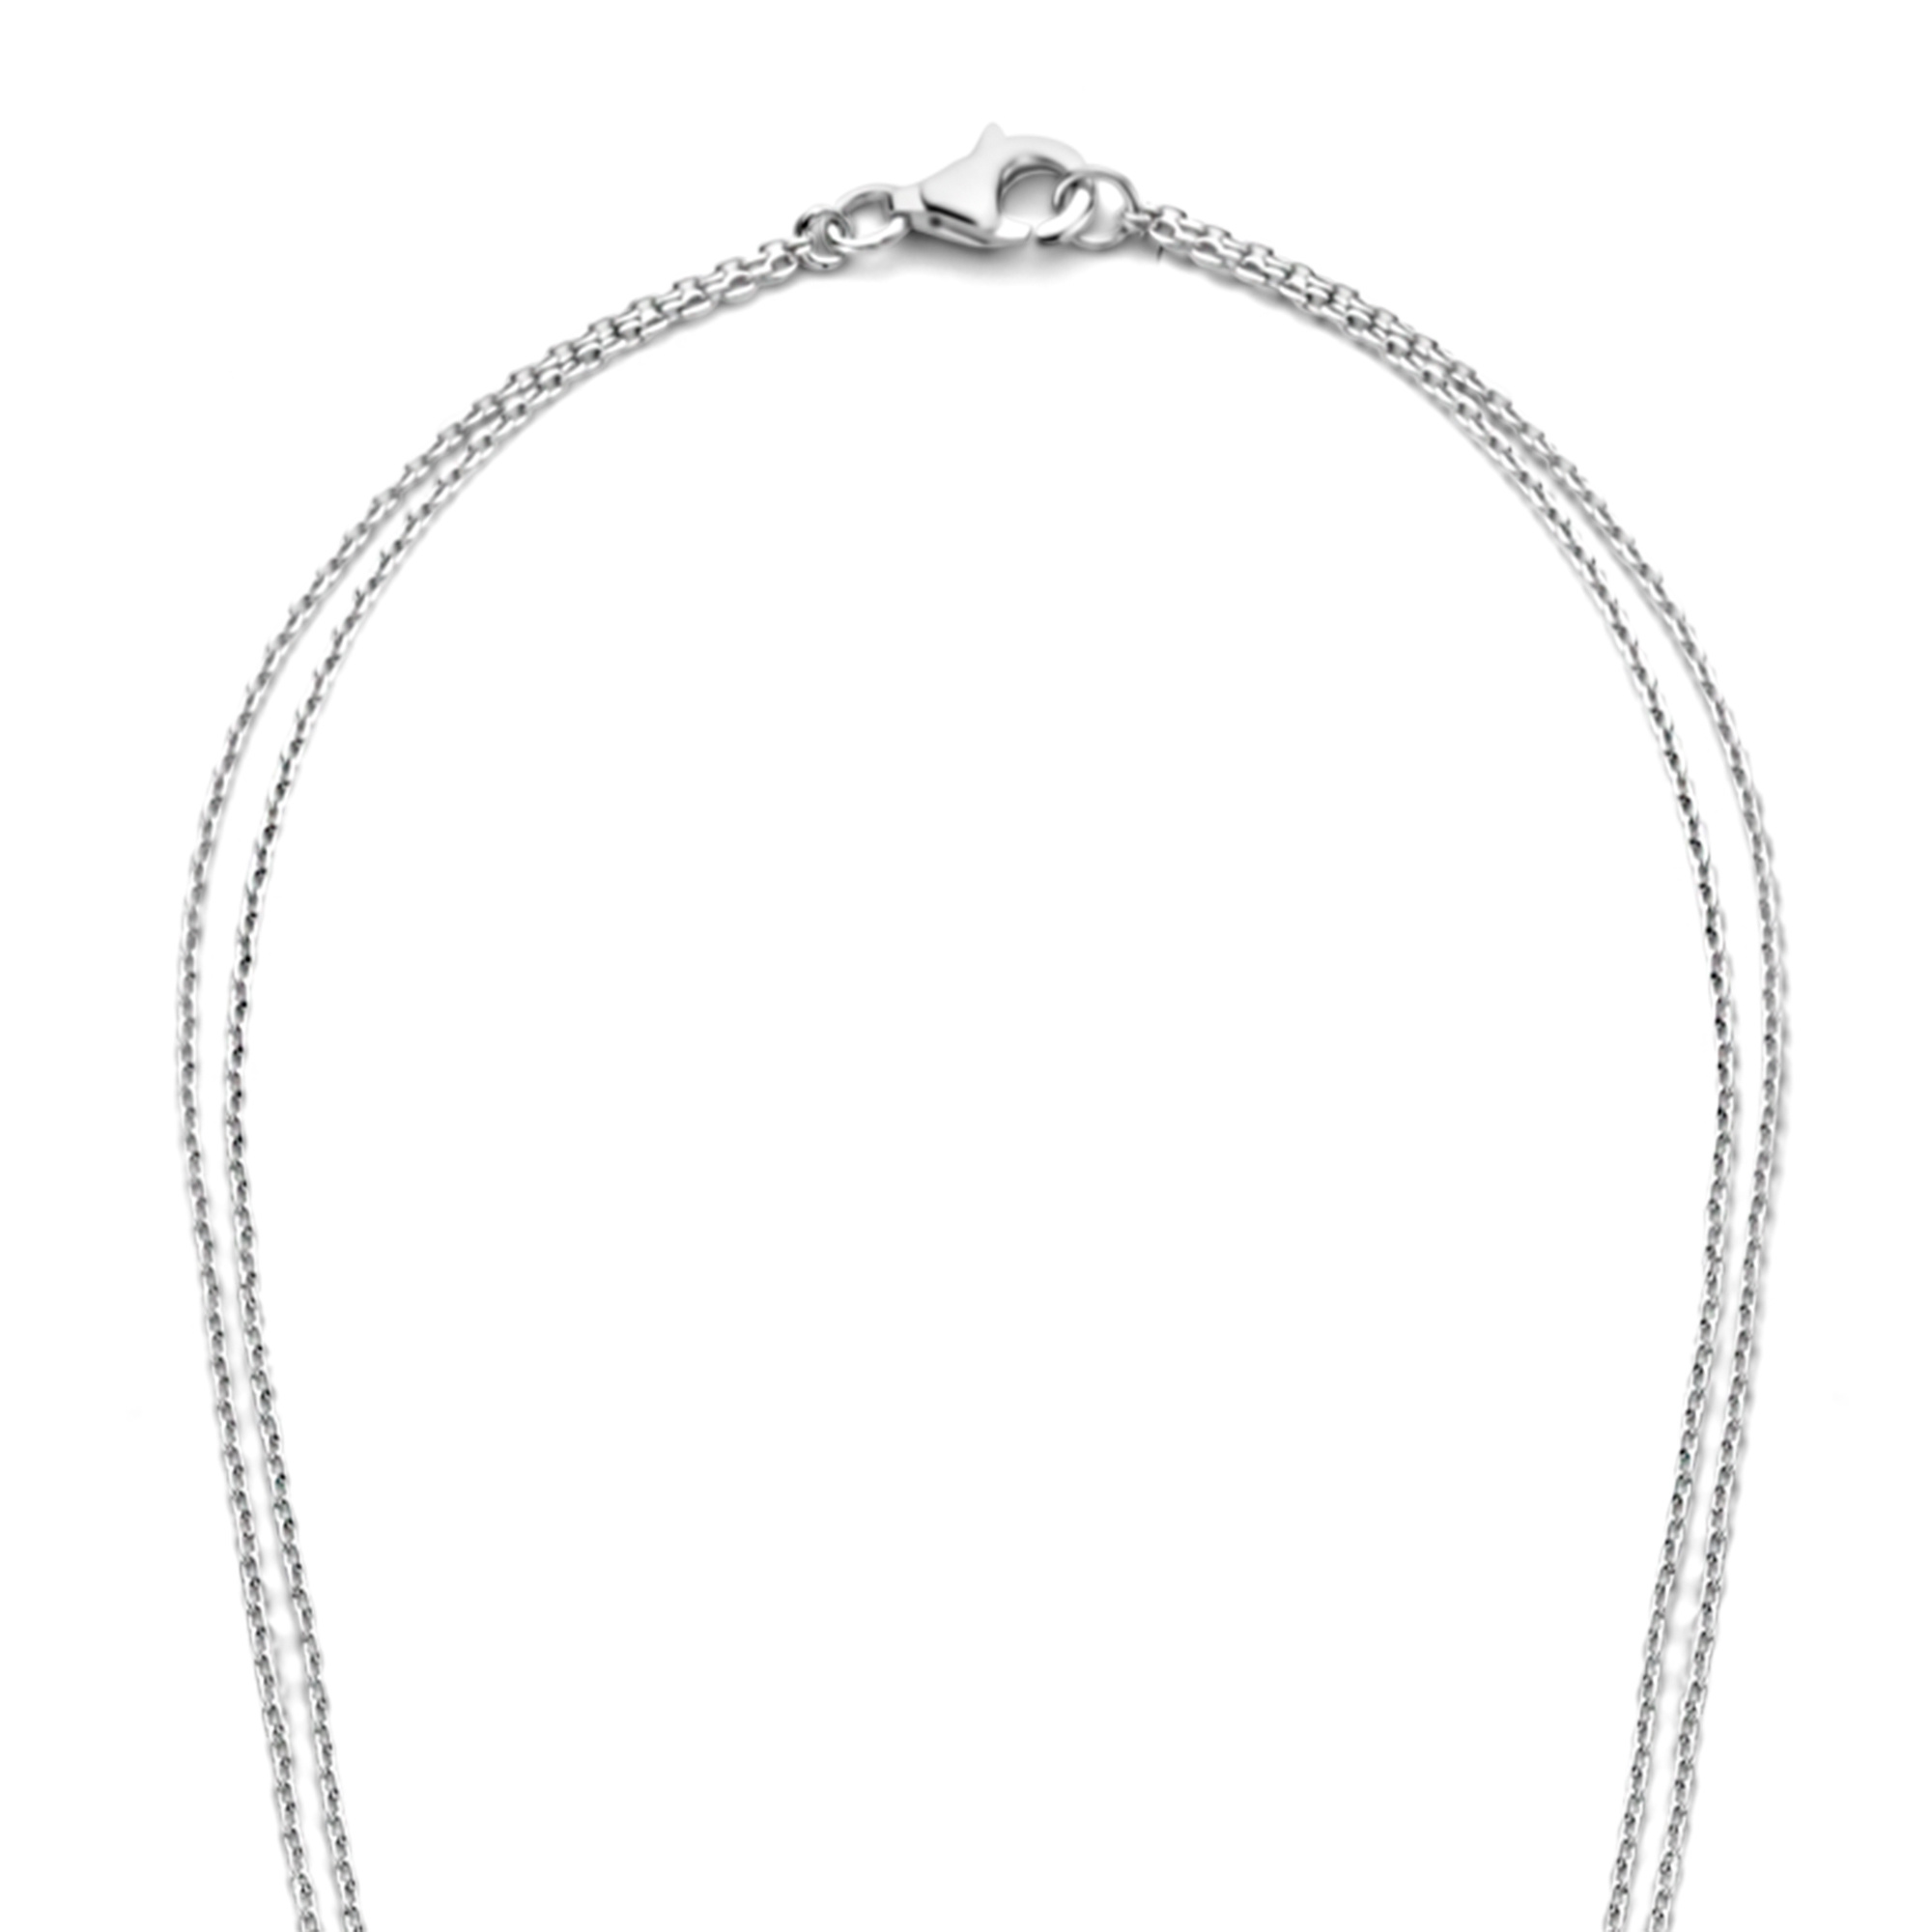 Selected Jewels Mila Elodie collier double en argent sterling 925